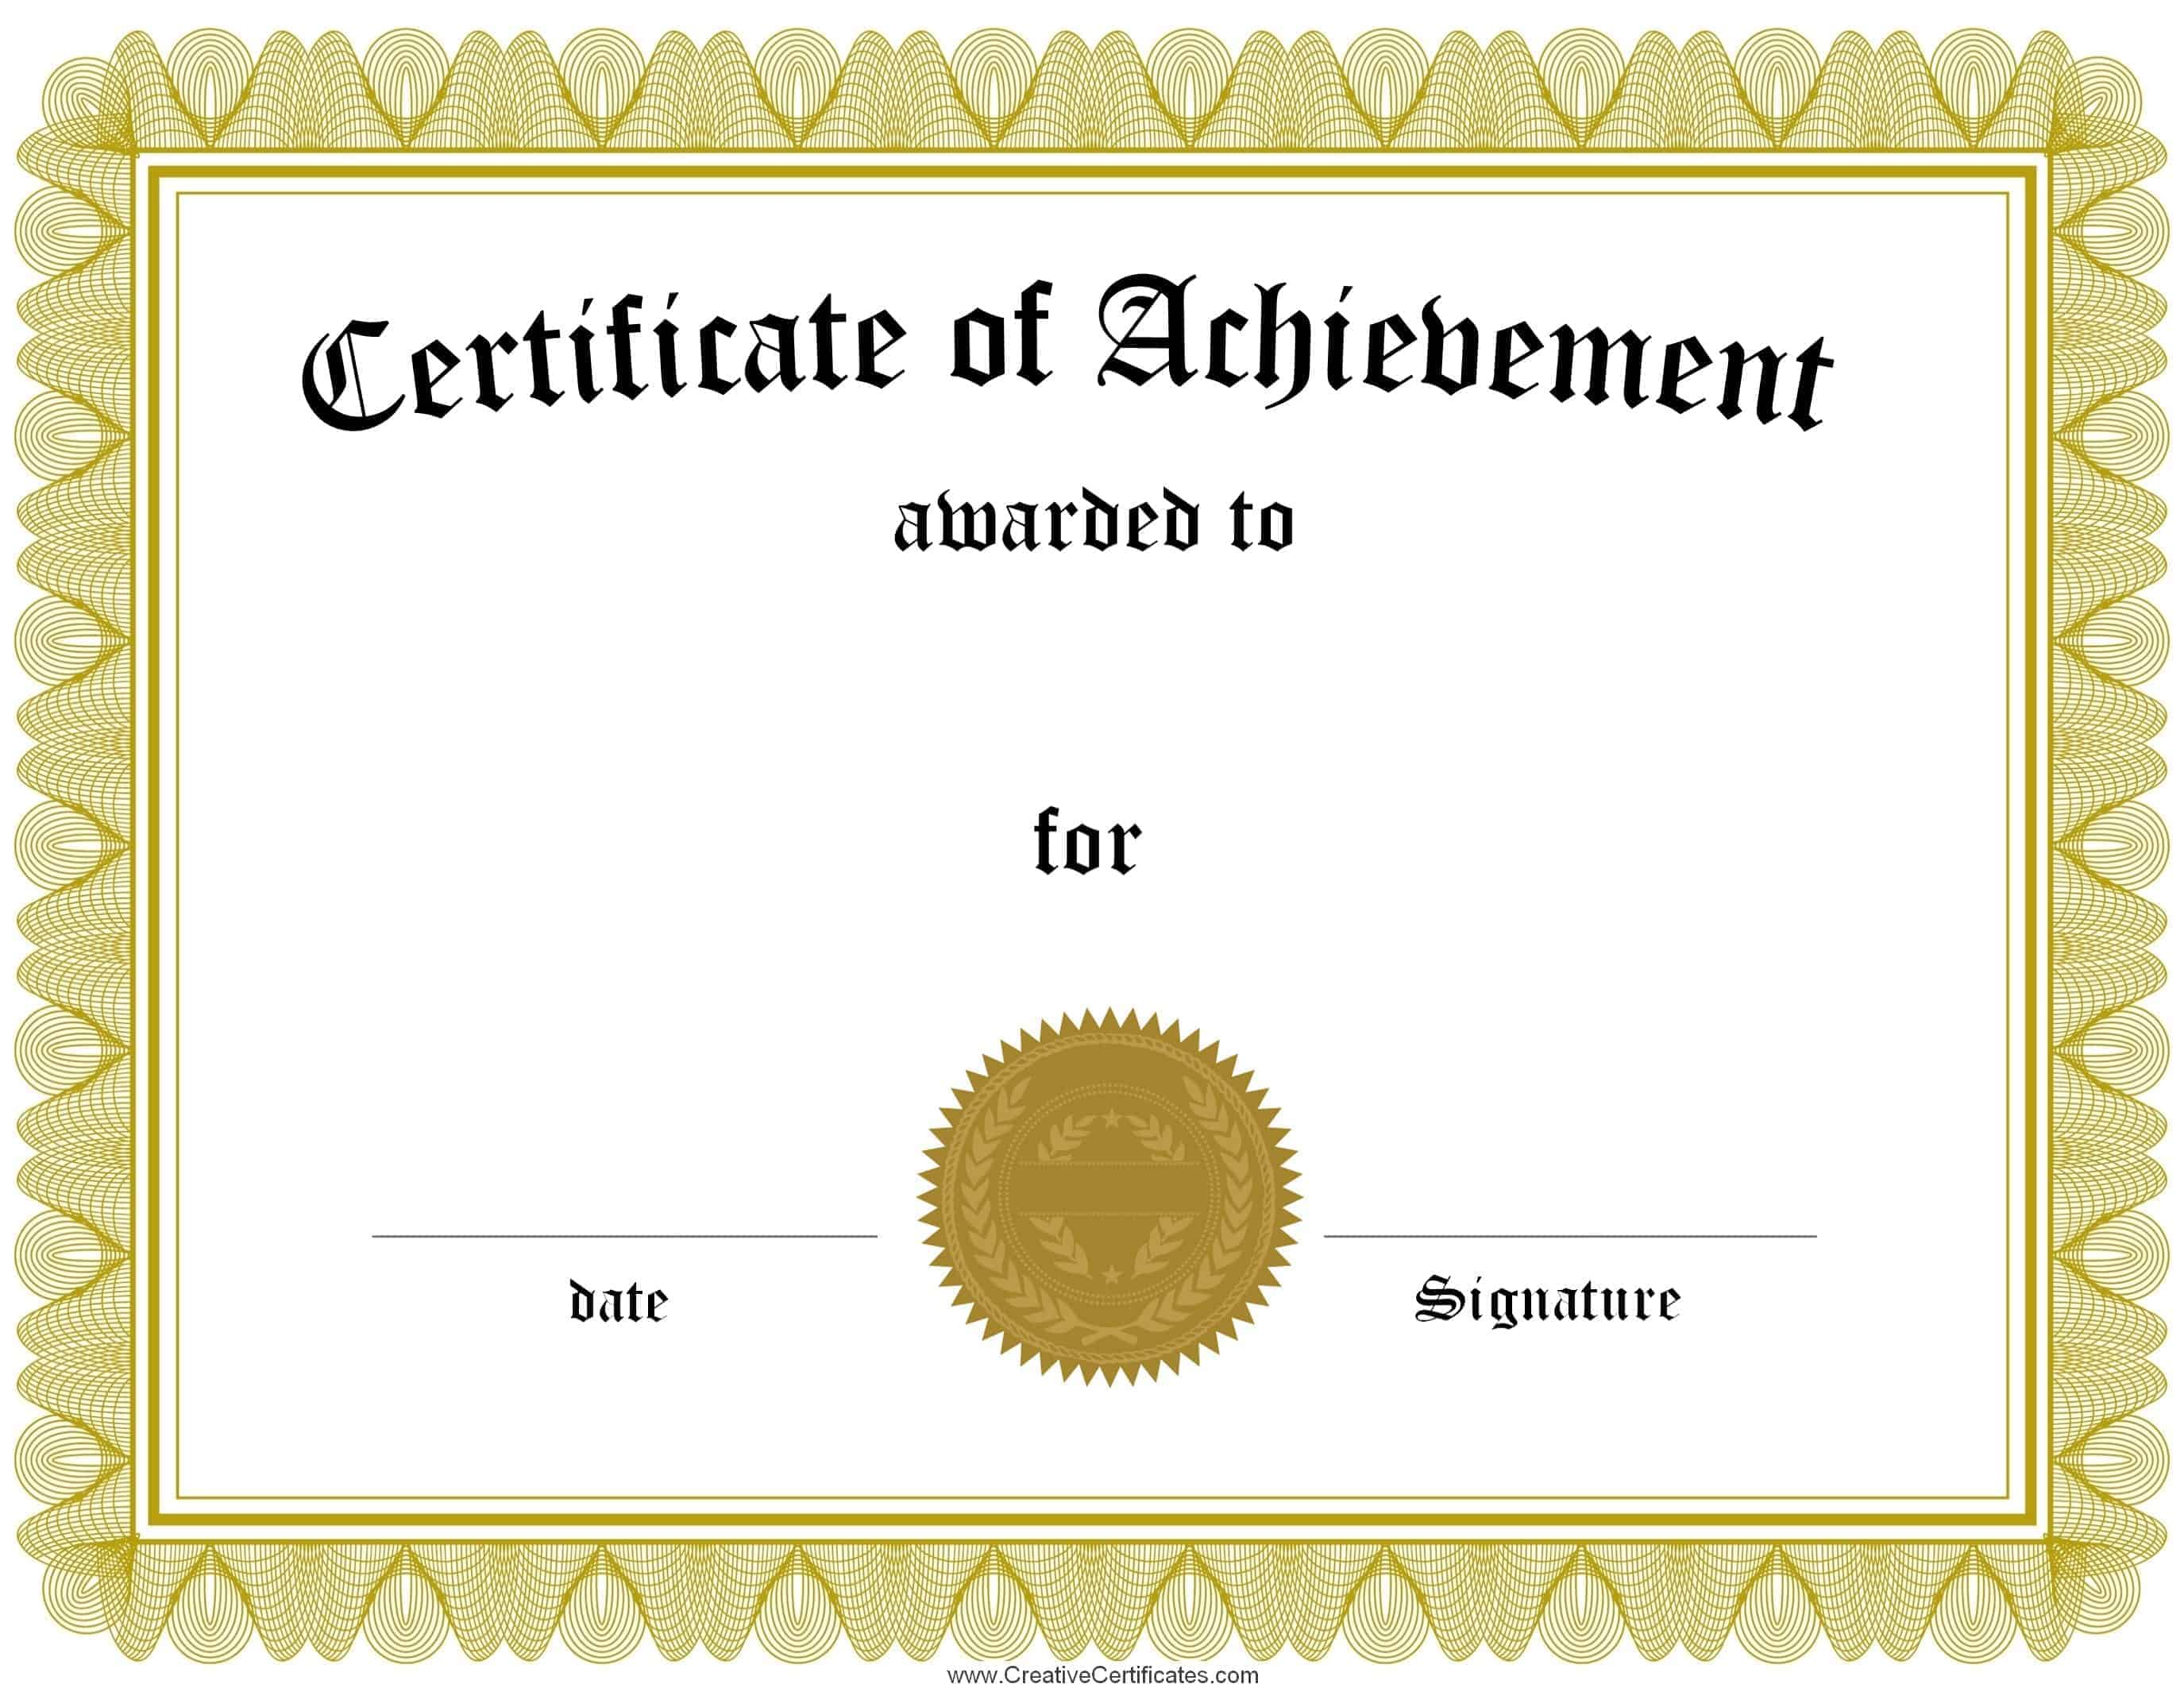 Free Customizable Certificate of Achievement – Blank Certificates Template